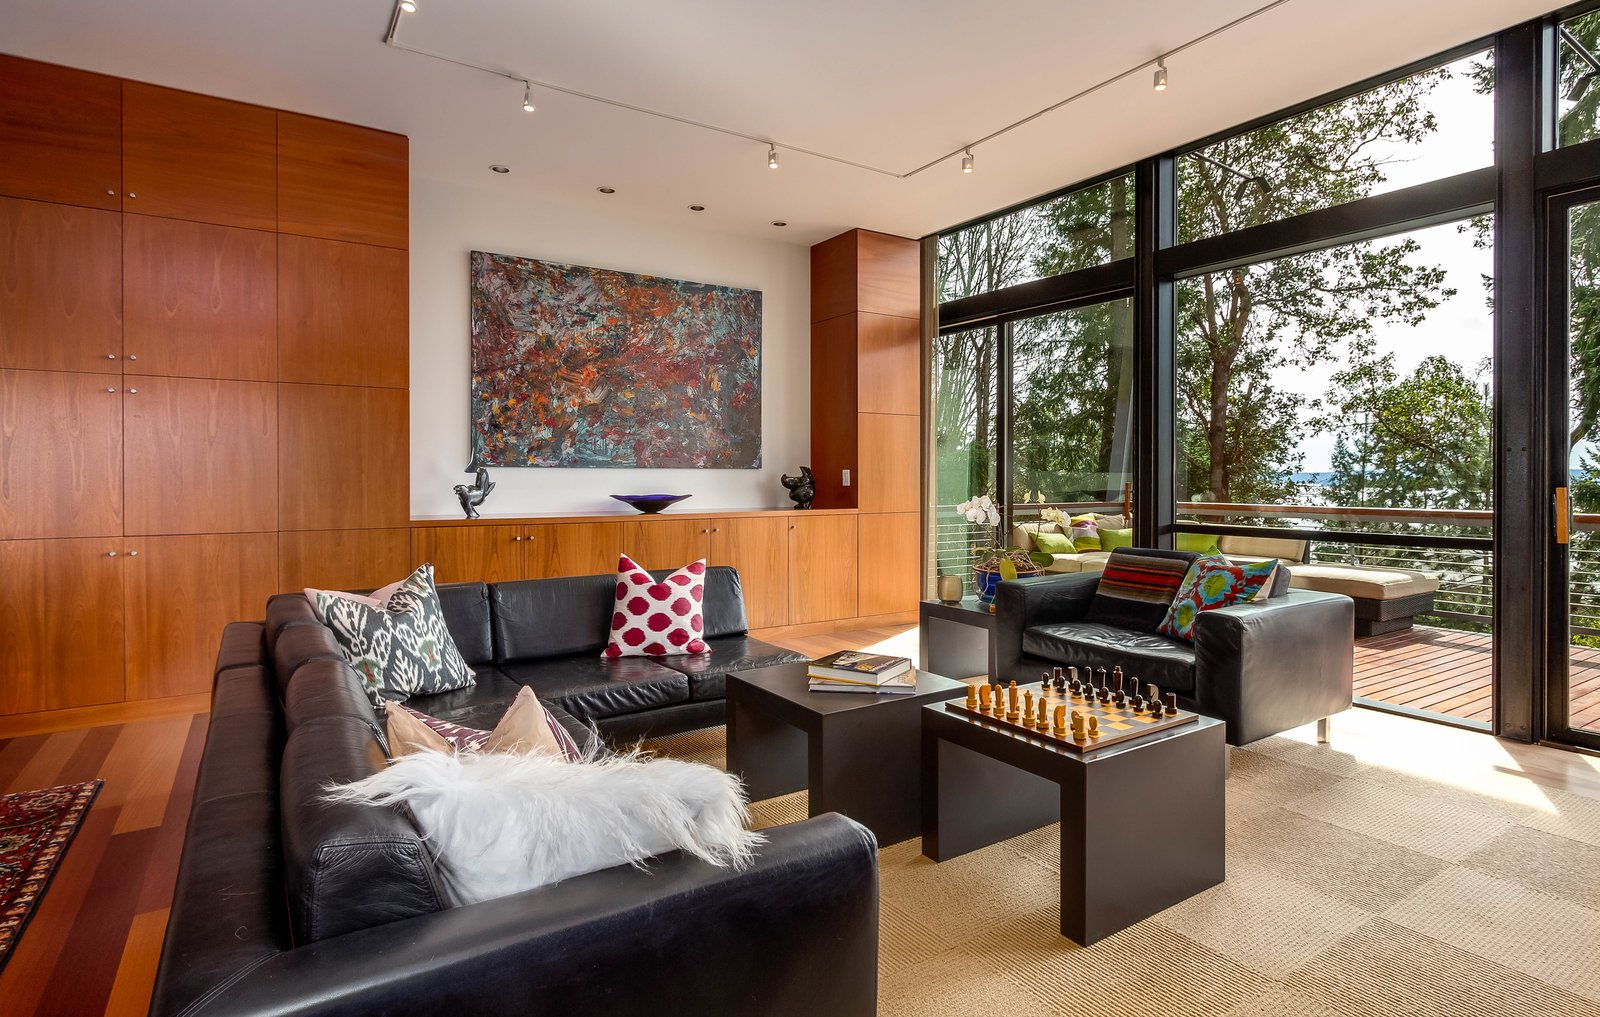 Living Room The living room has a full-height wall of windows, and it opens to a deck with spectacular views of the forested surroundings.  Photo 3 of 8 in A Cantilevered Bainbridge Island Home Set Atop a Historic Bunker Lists For $1.73M from Stunning Steel-Frame Construction Cantilevered atop Historic Bunker For Sale